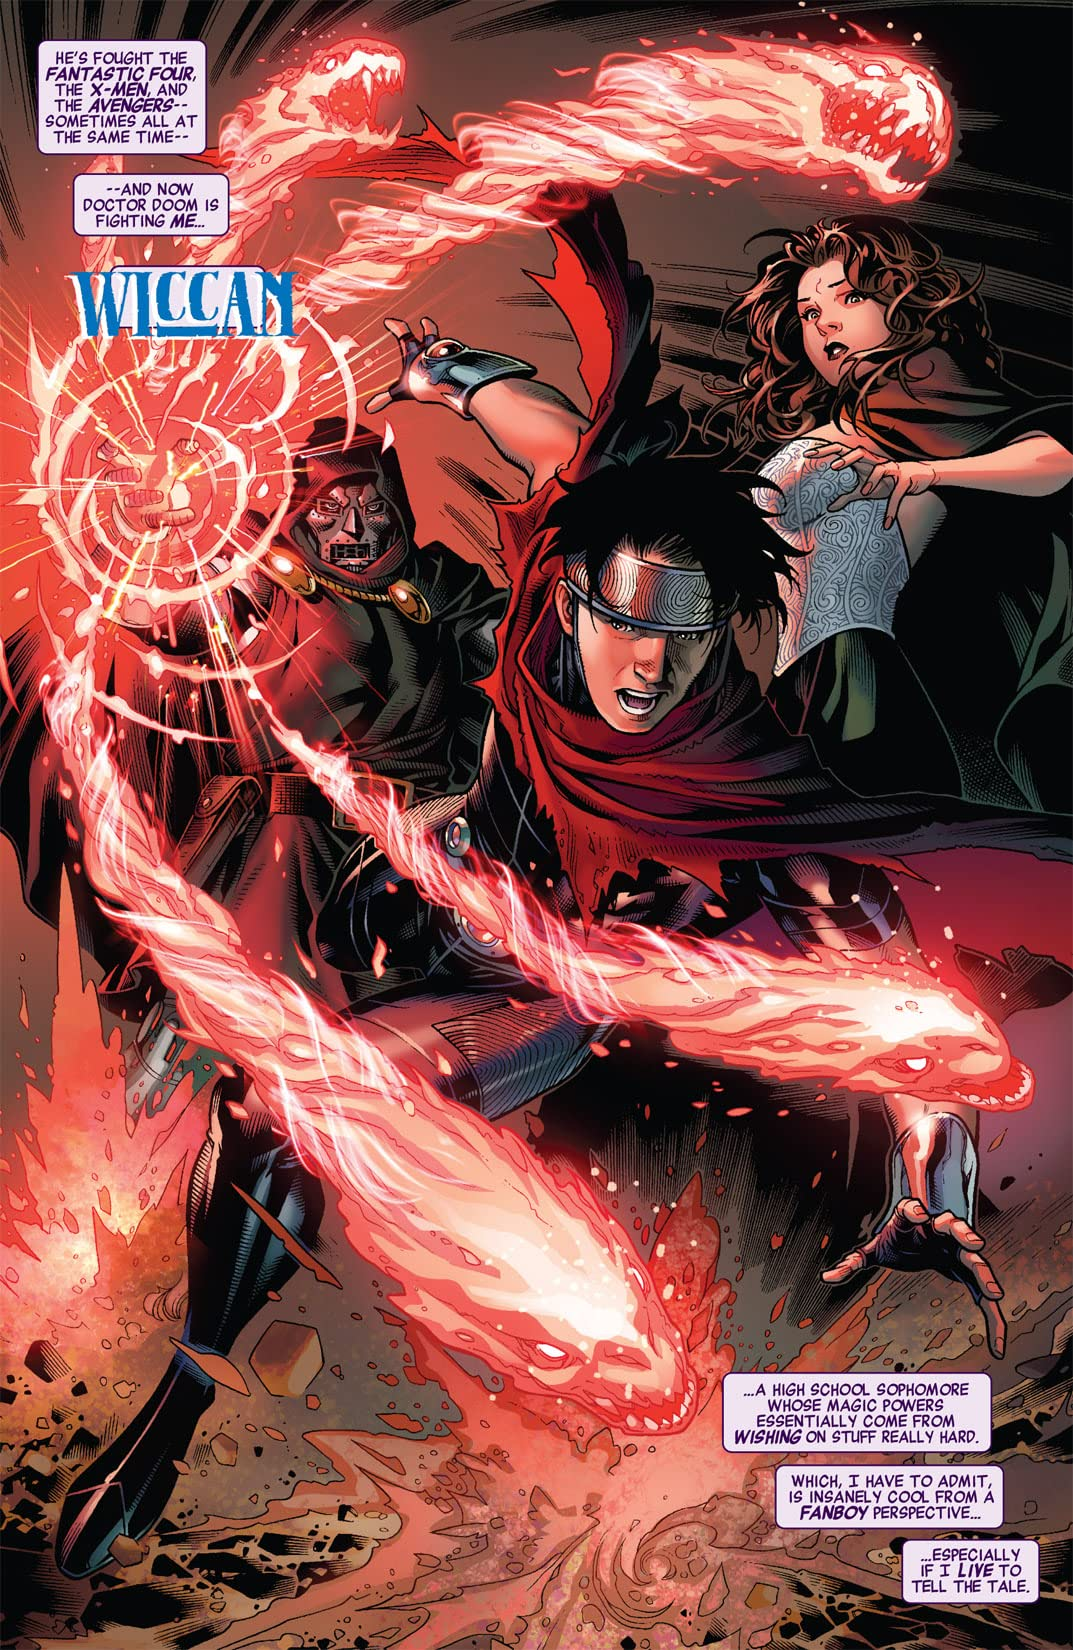 Avengers: The Children's Crusade #4 (of 9)